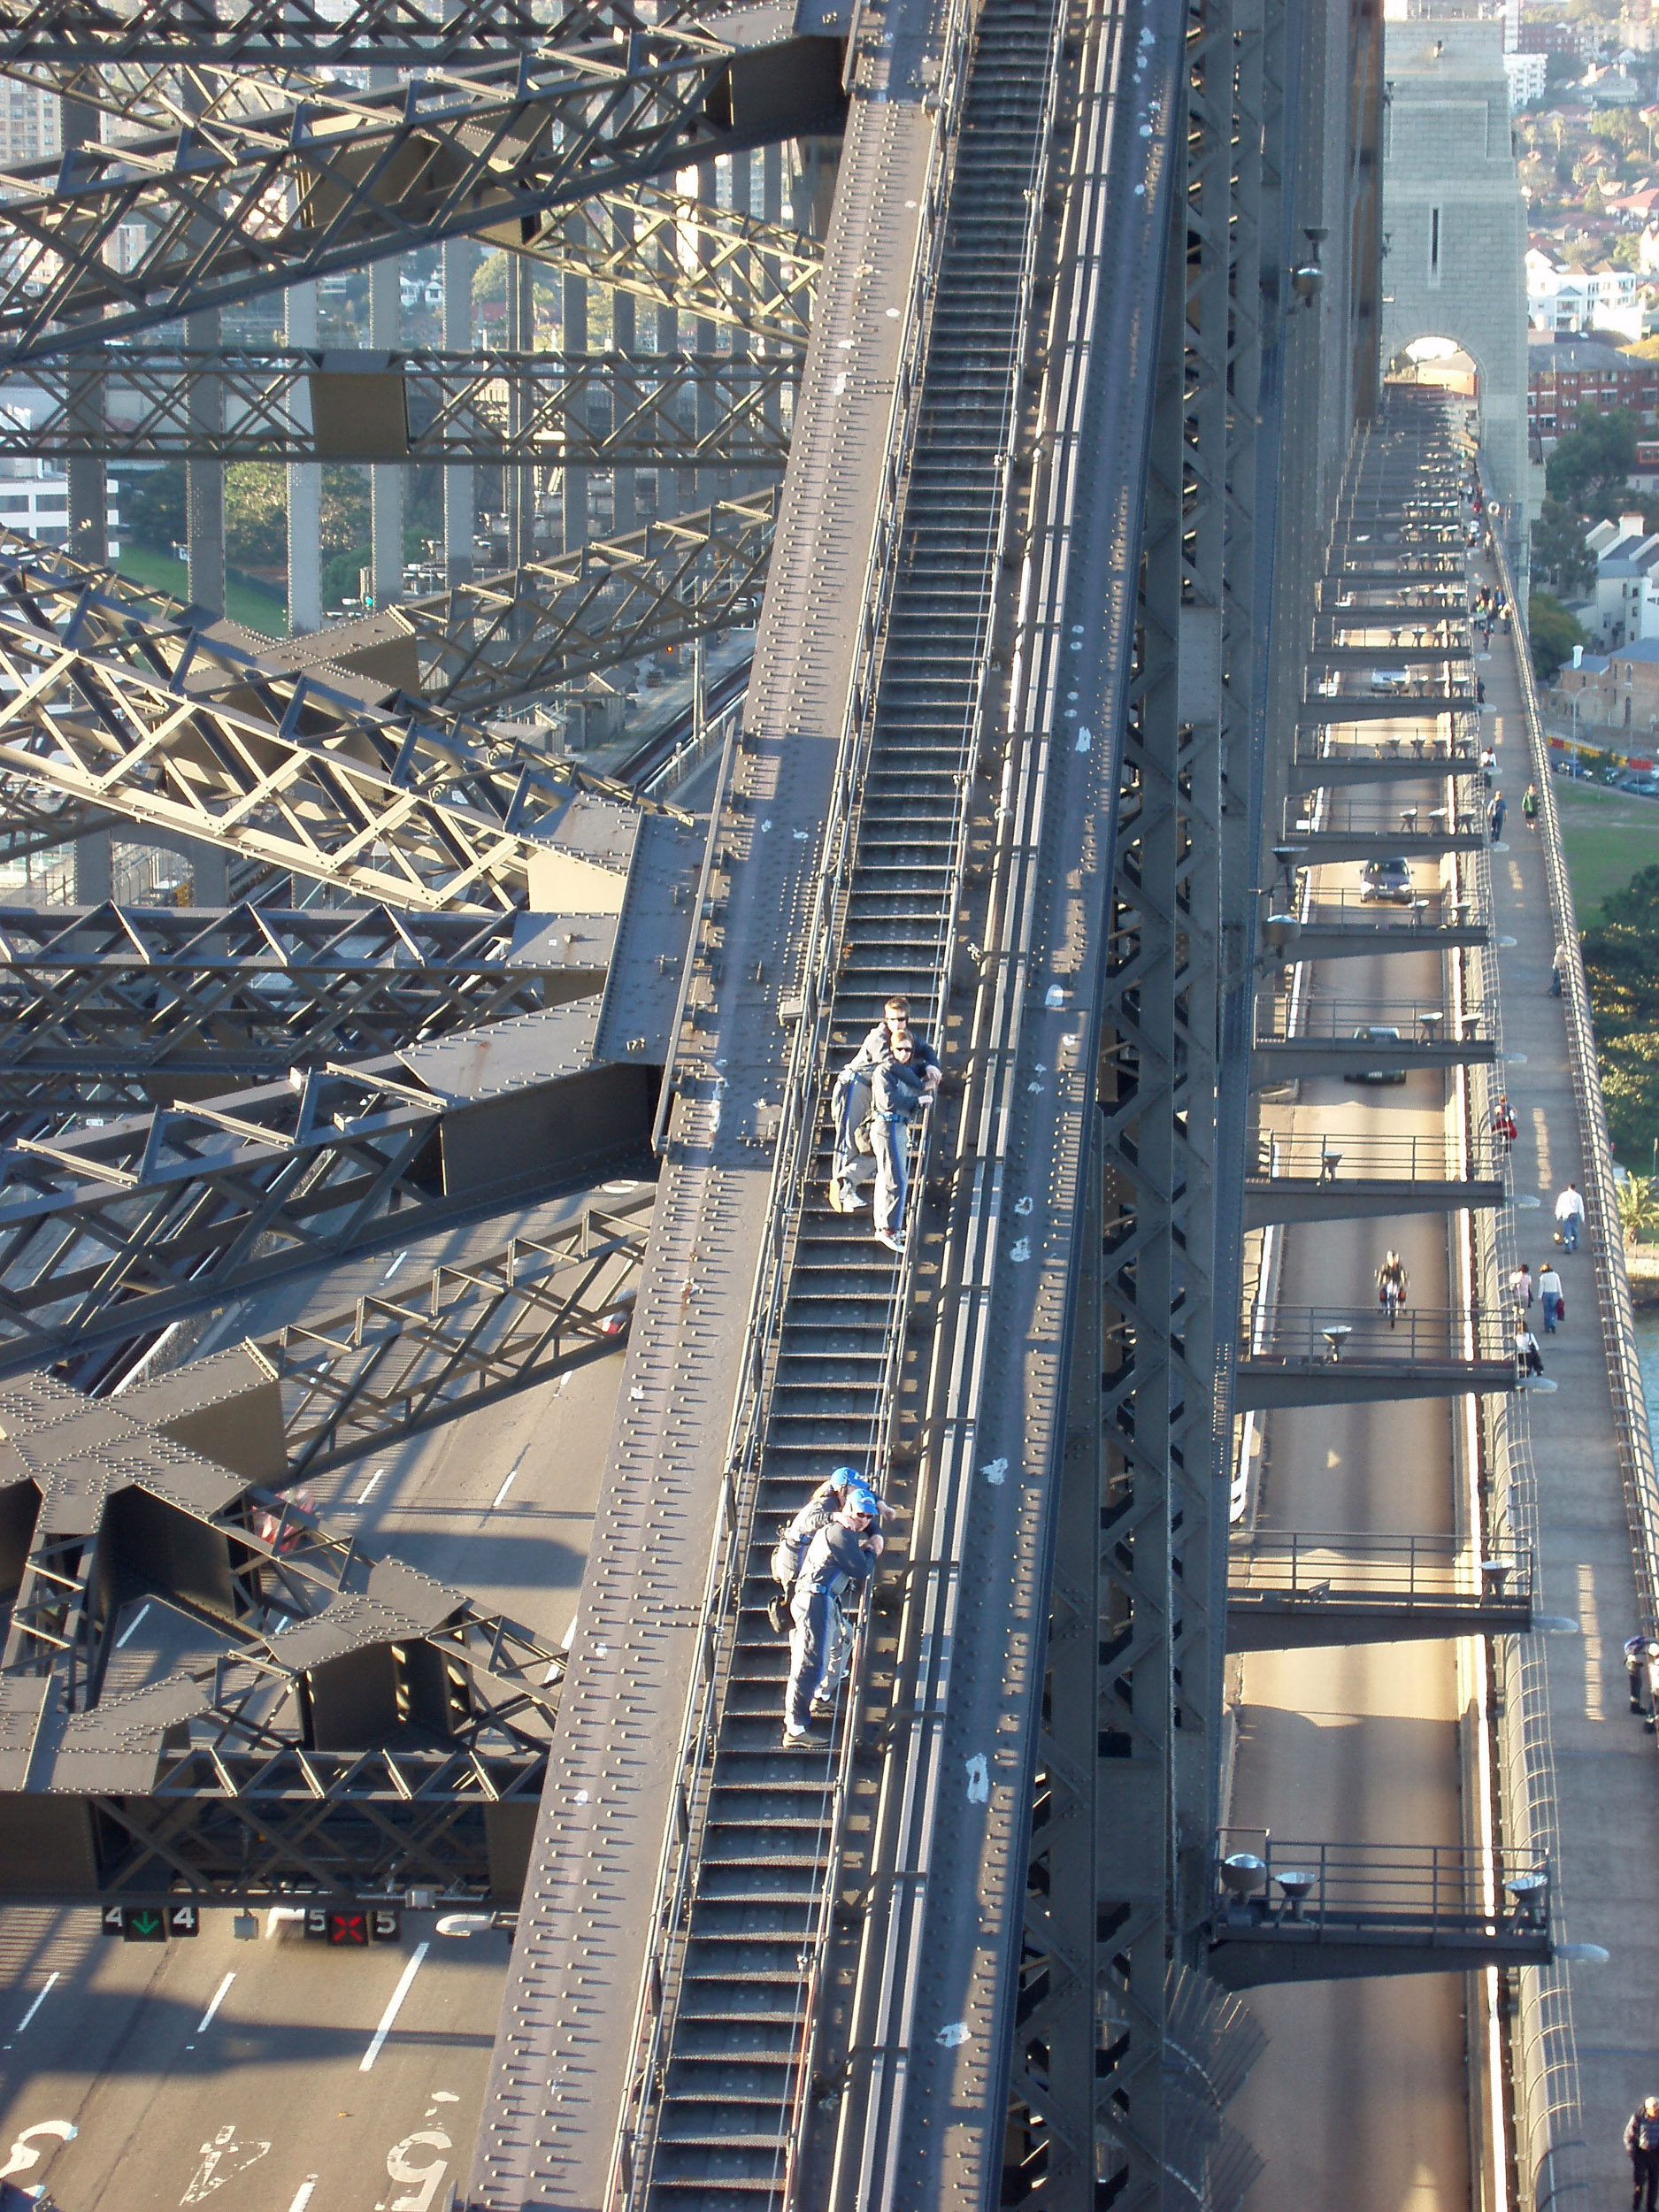 pedestrians and traffic crossing sydney harbour bridge as people climbing the bridge look down from above